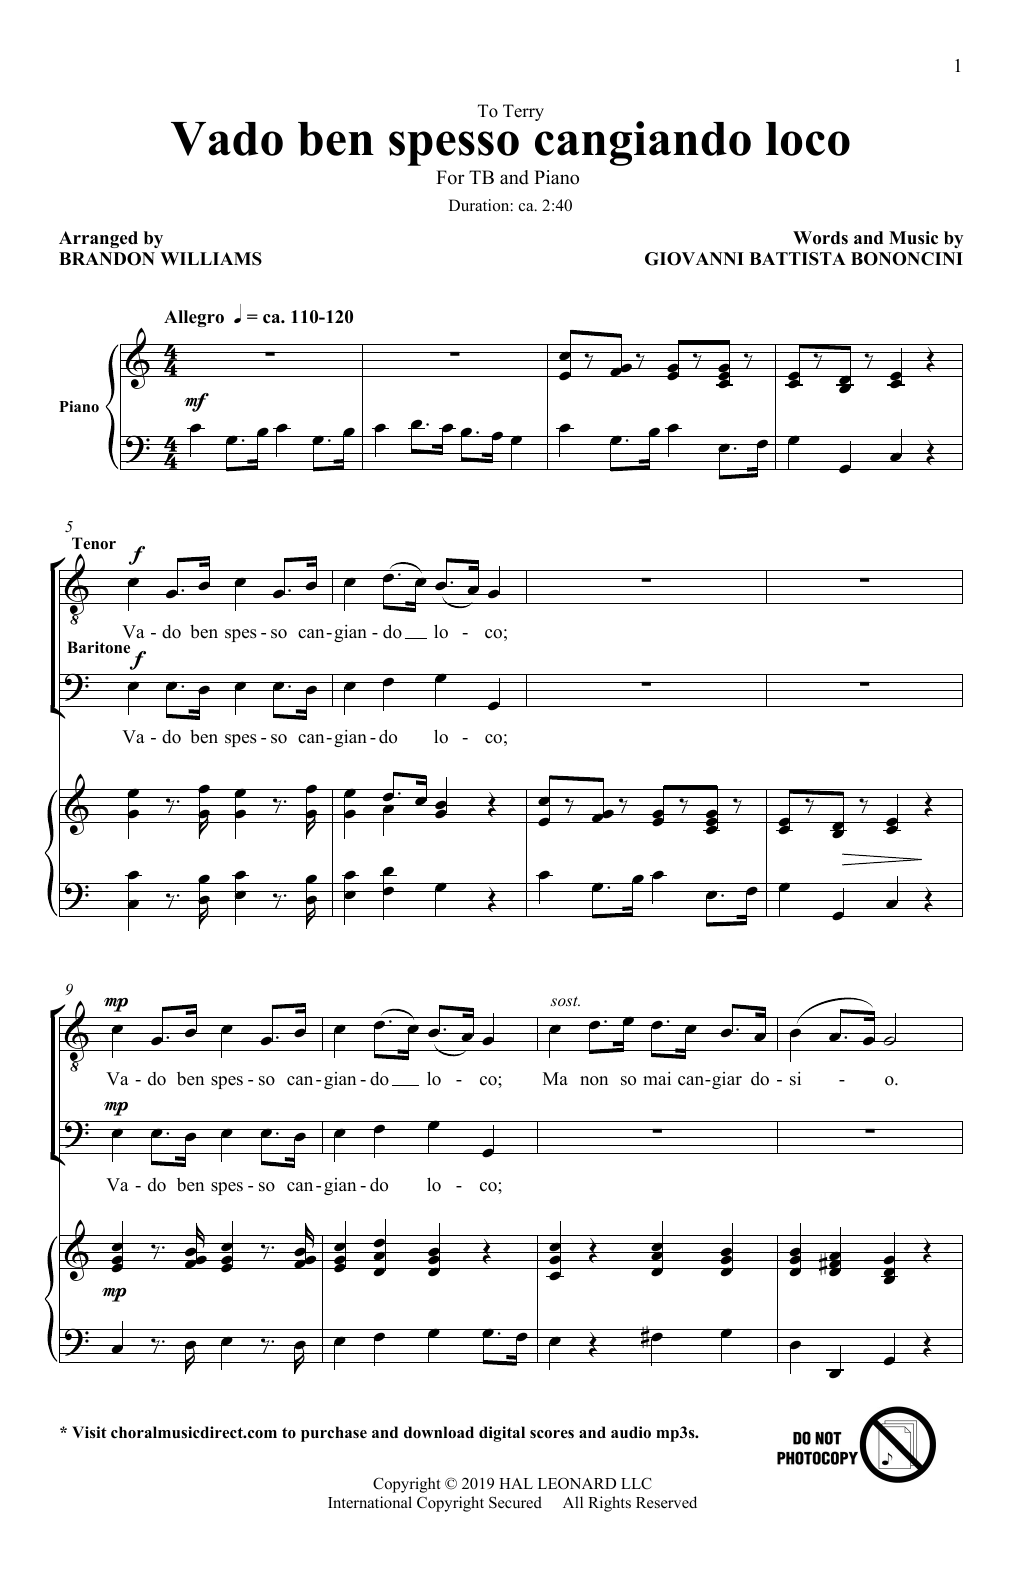 Download Giovanni Battista Bononcini 'Vado Ben Spesso Cangiando Loco (arr. Brandon Williams)' Digital Sheet Music Notes & Chords and start playing in minutes